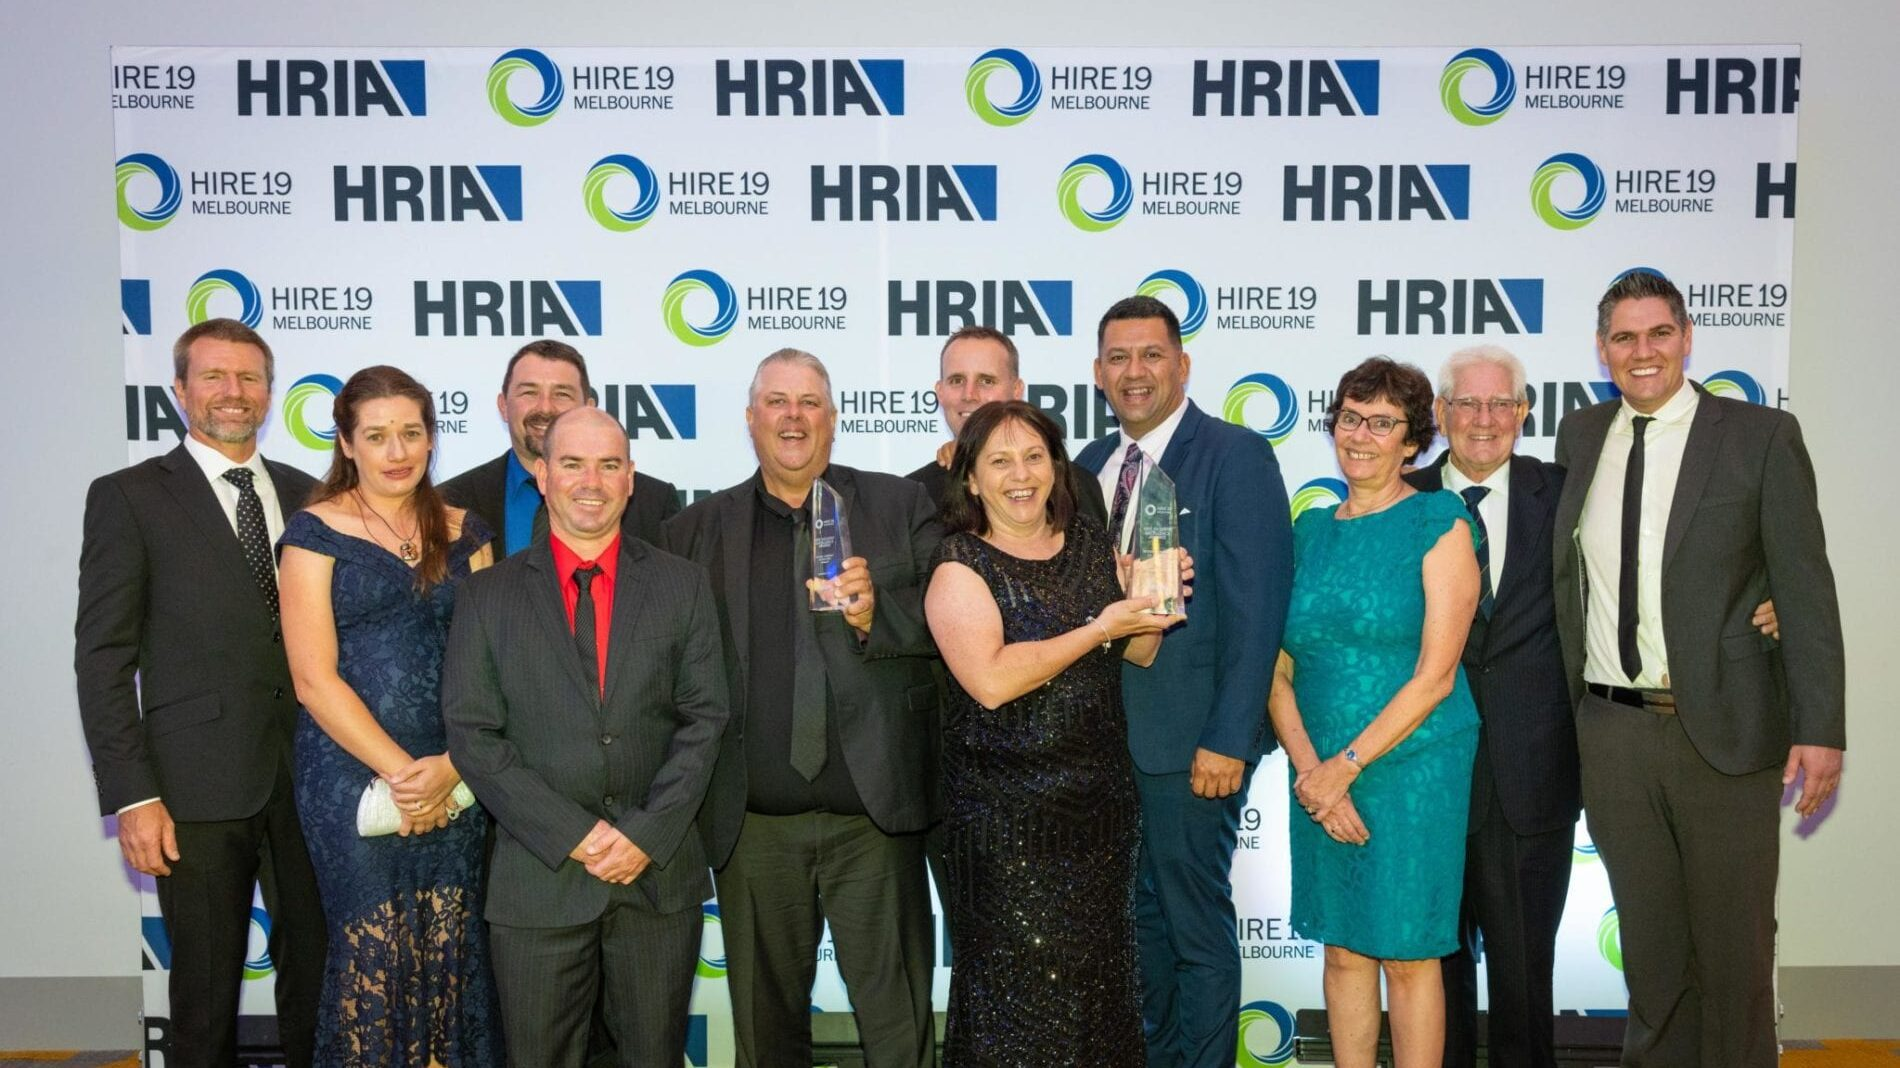 Master Hire Team 2019 Rental Company of the Year